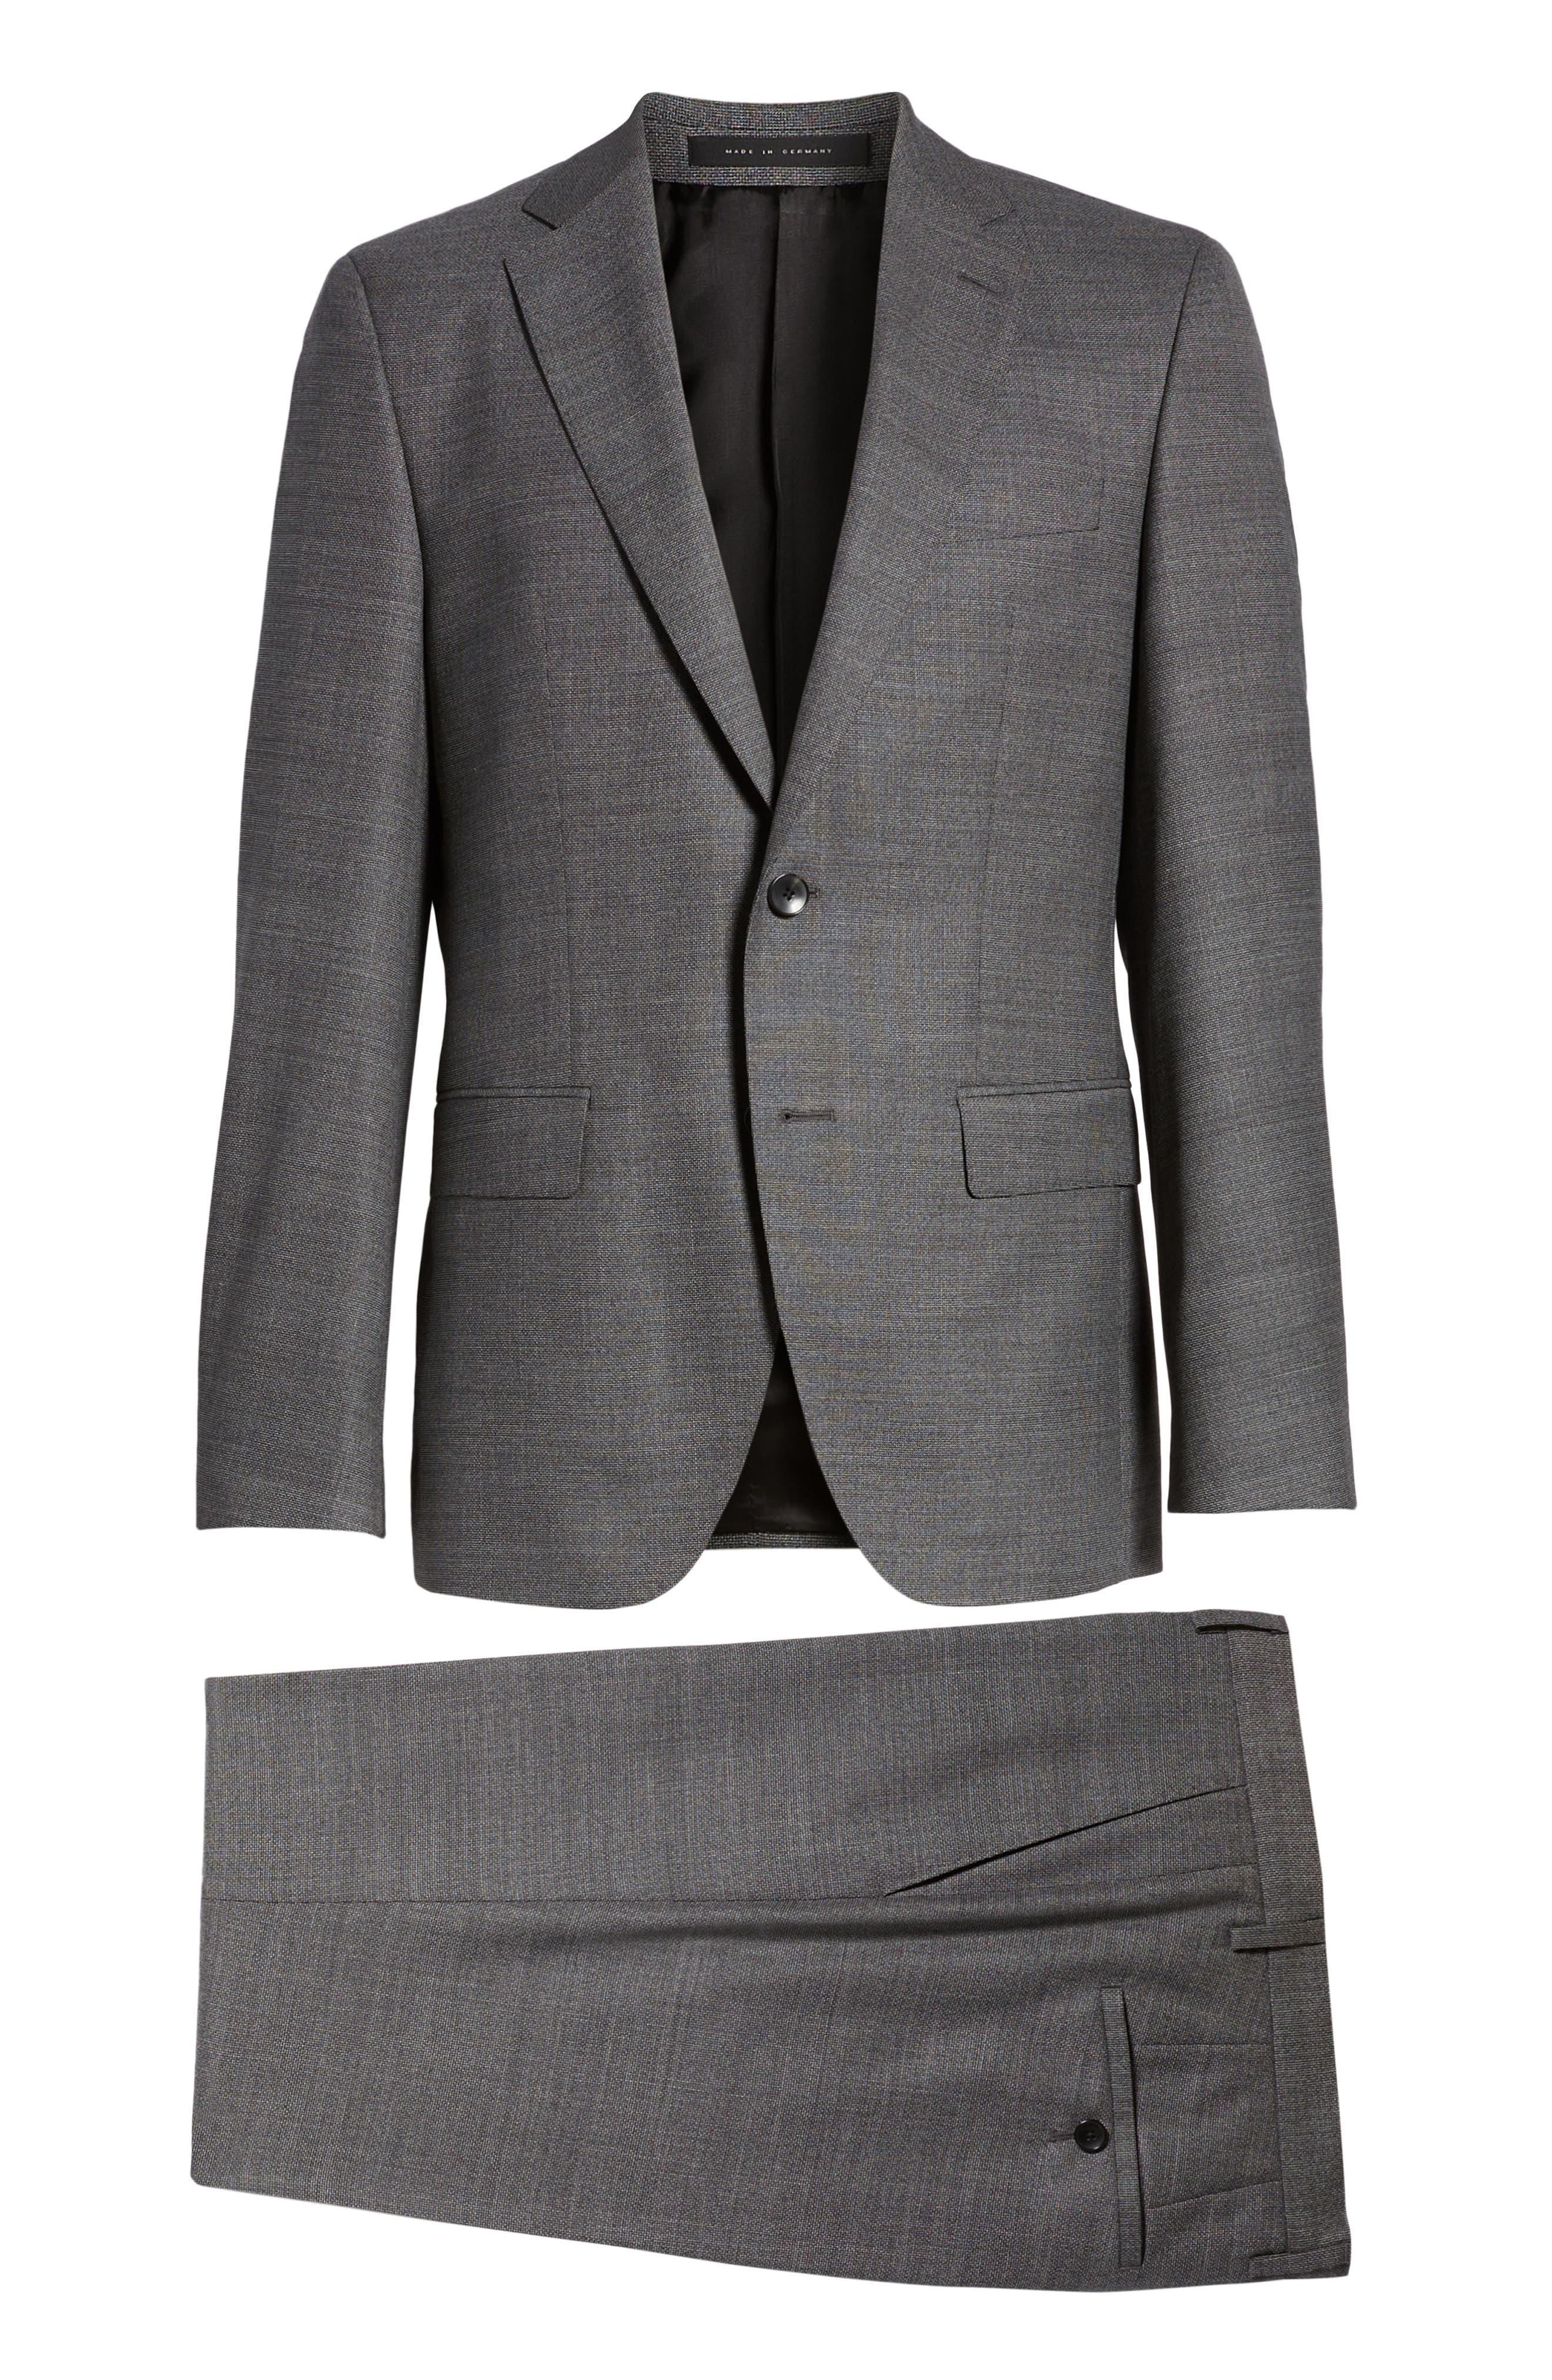 Johnstons/Lenon Classic Fit Solid Wool Suit,                             Alternate thumbnail 8, color,                             020